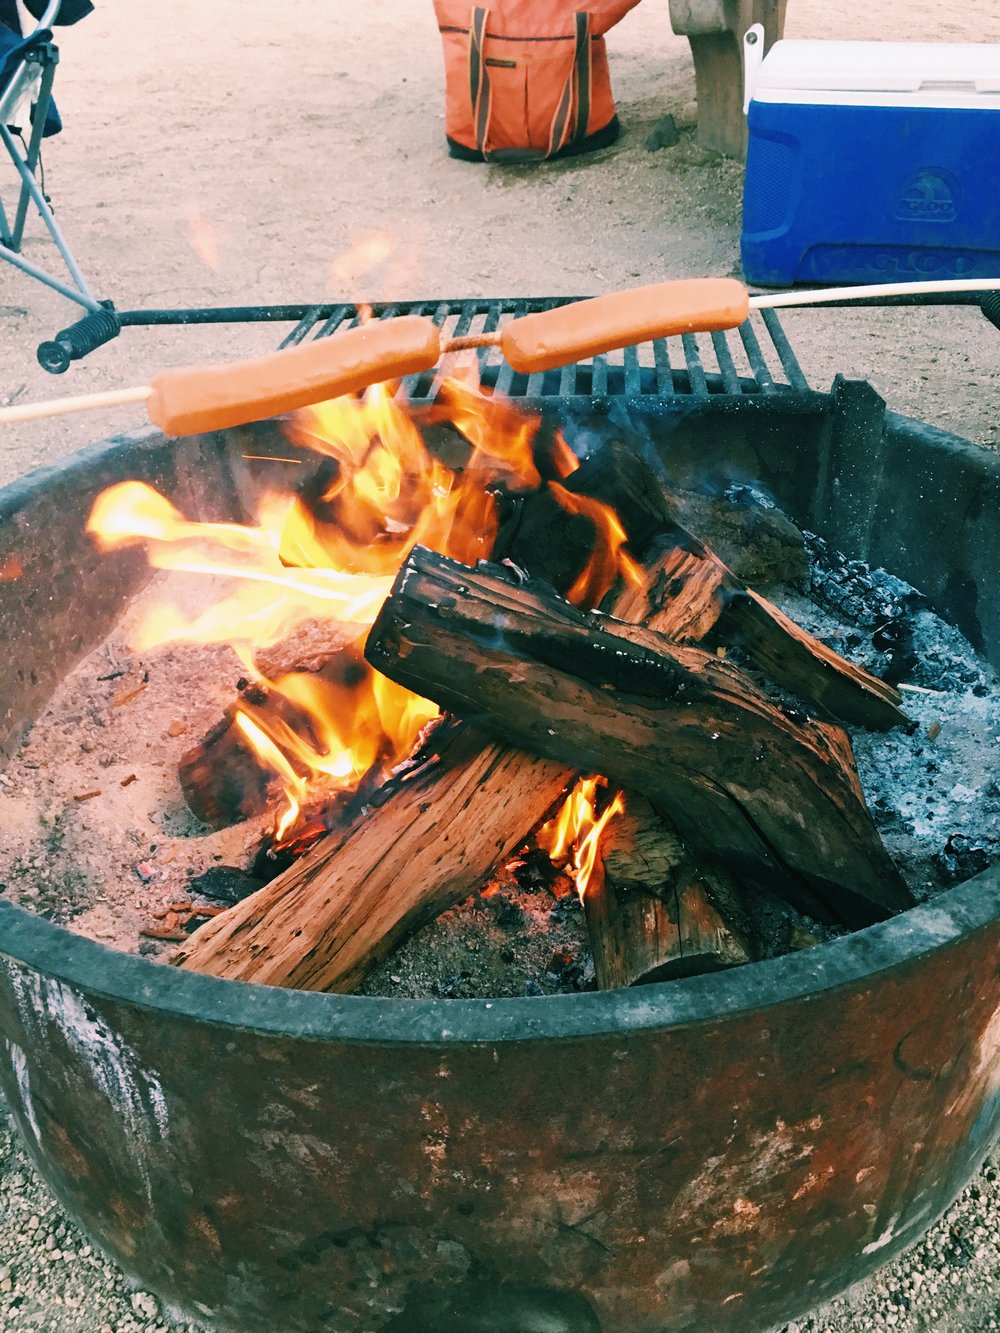 fire-cooked-hotdogs-camping